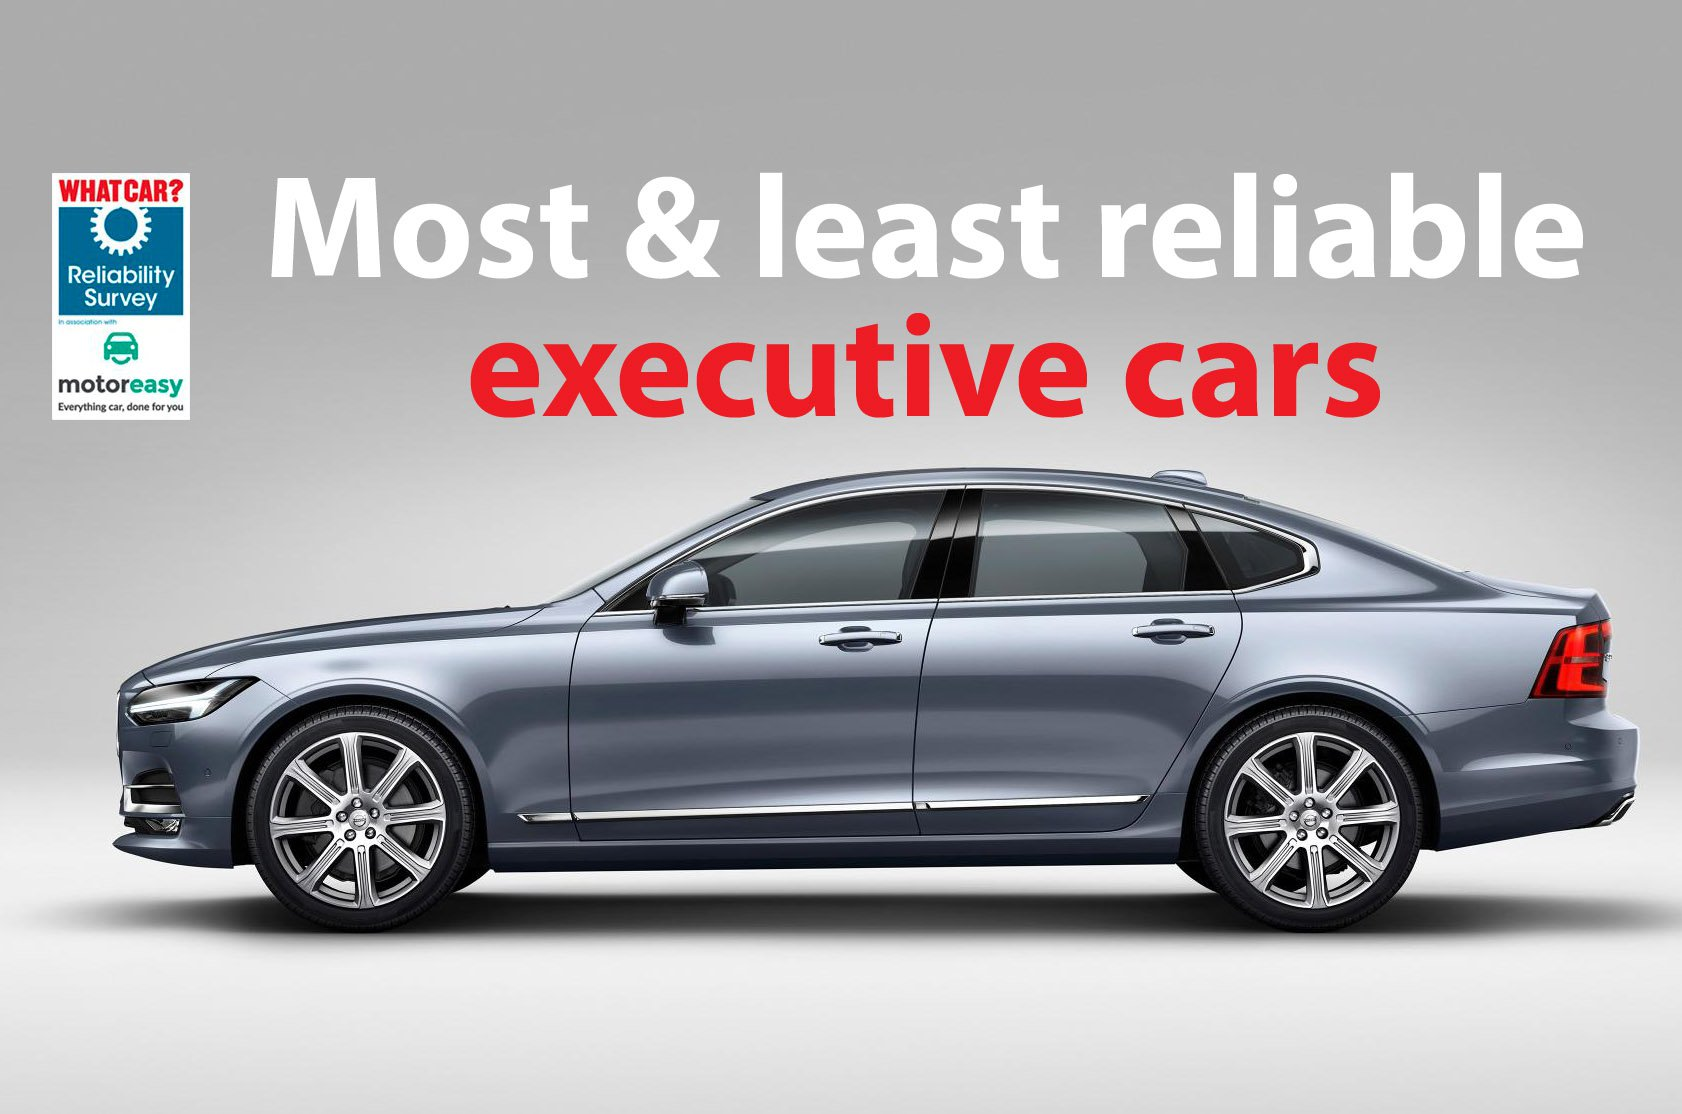 Most and least reliable executive cars